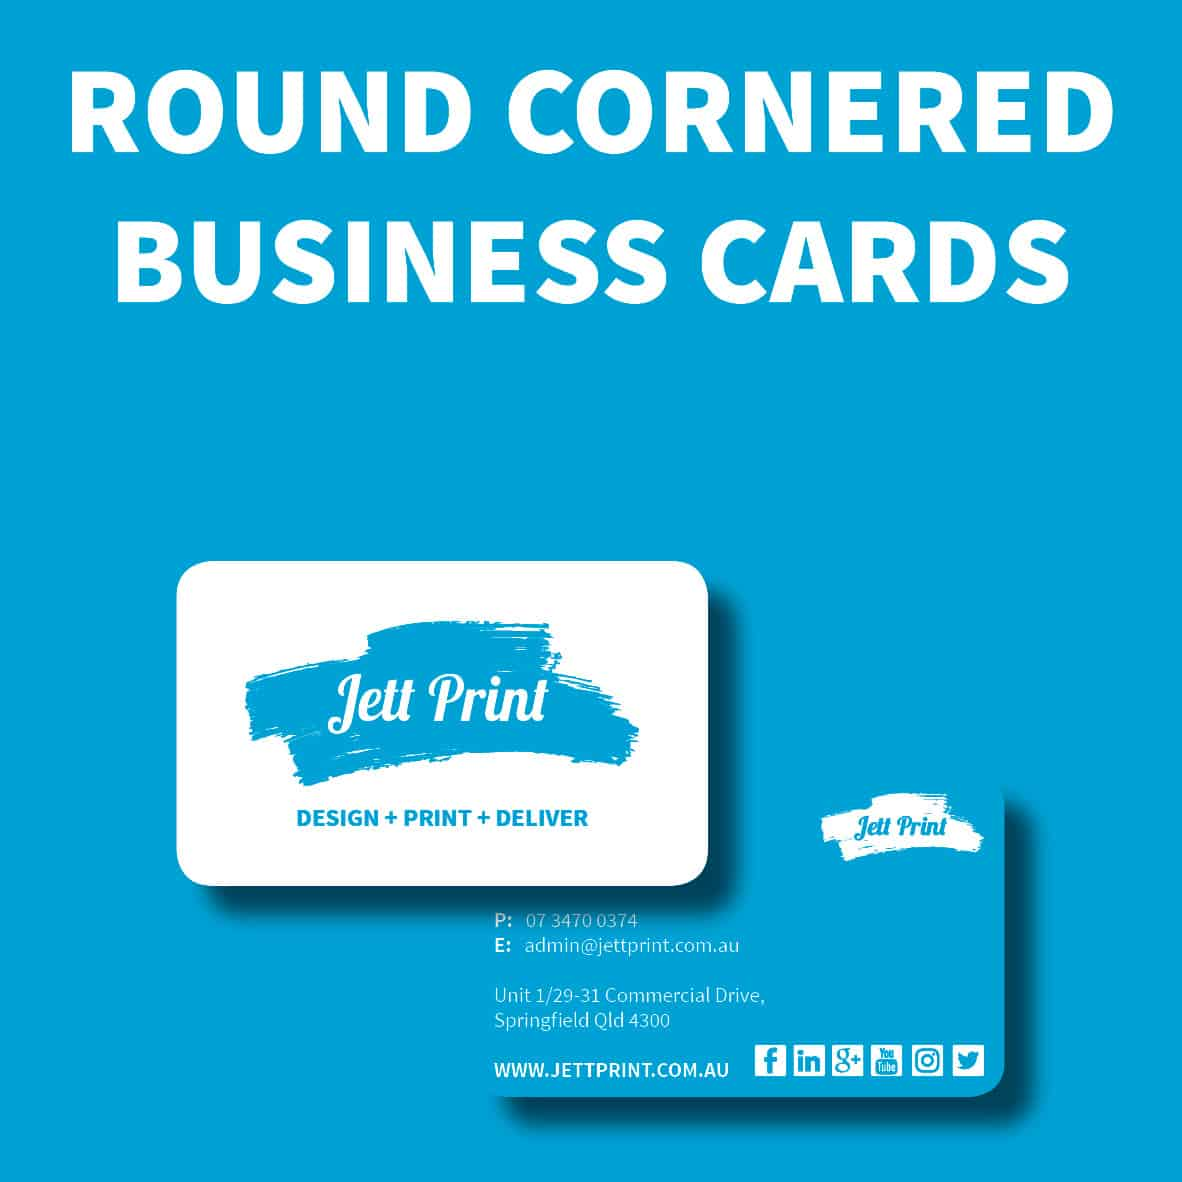 round-cornered-business-cards-printing-springfield-ipswich-brisbane18